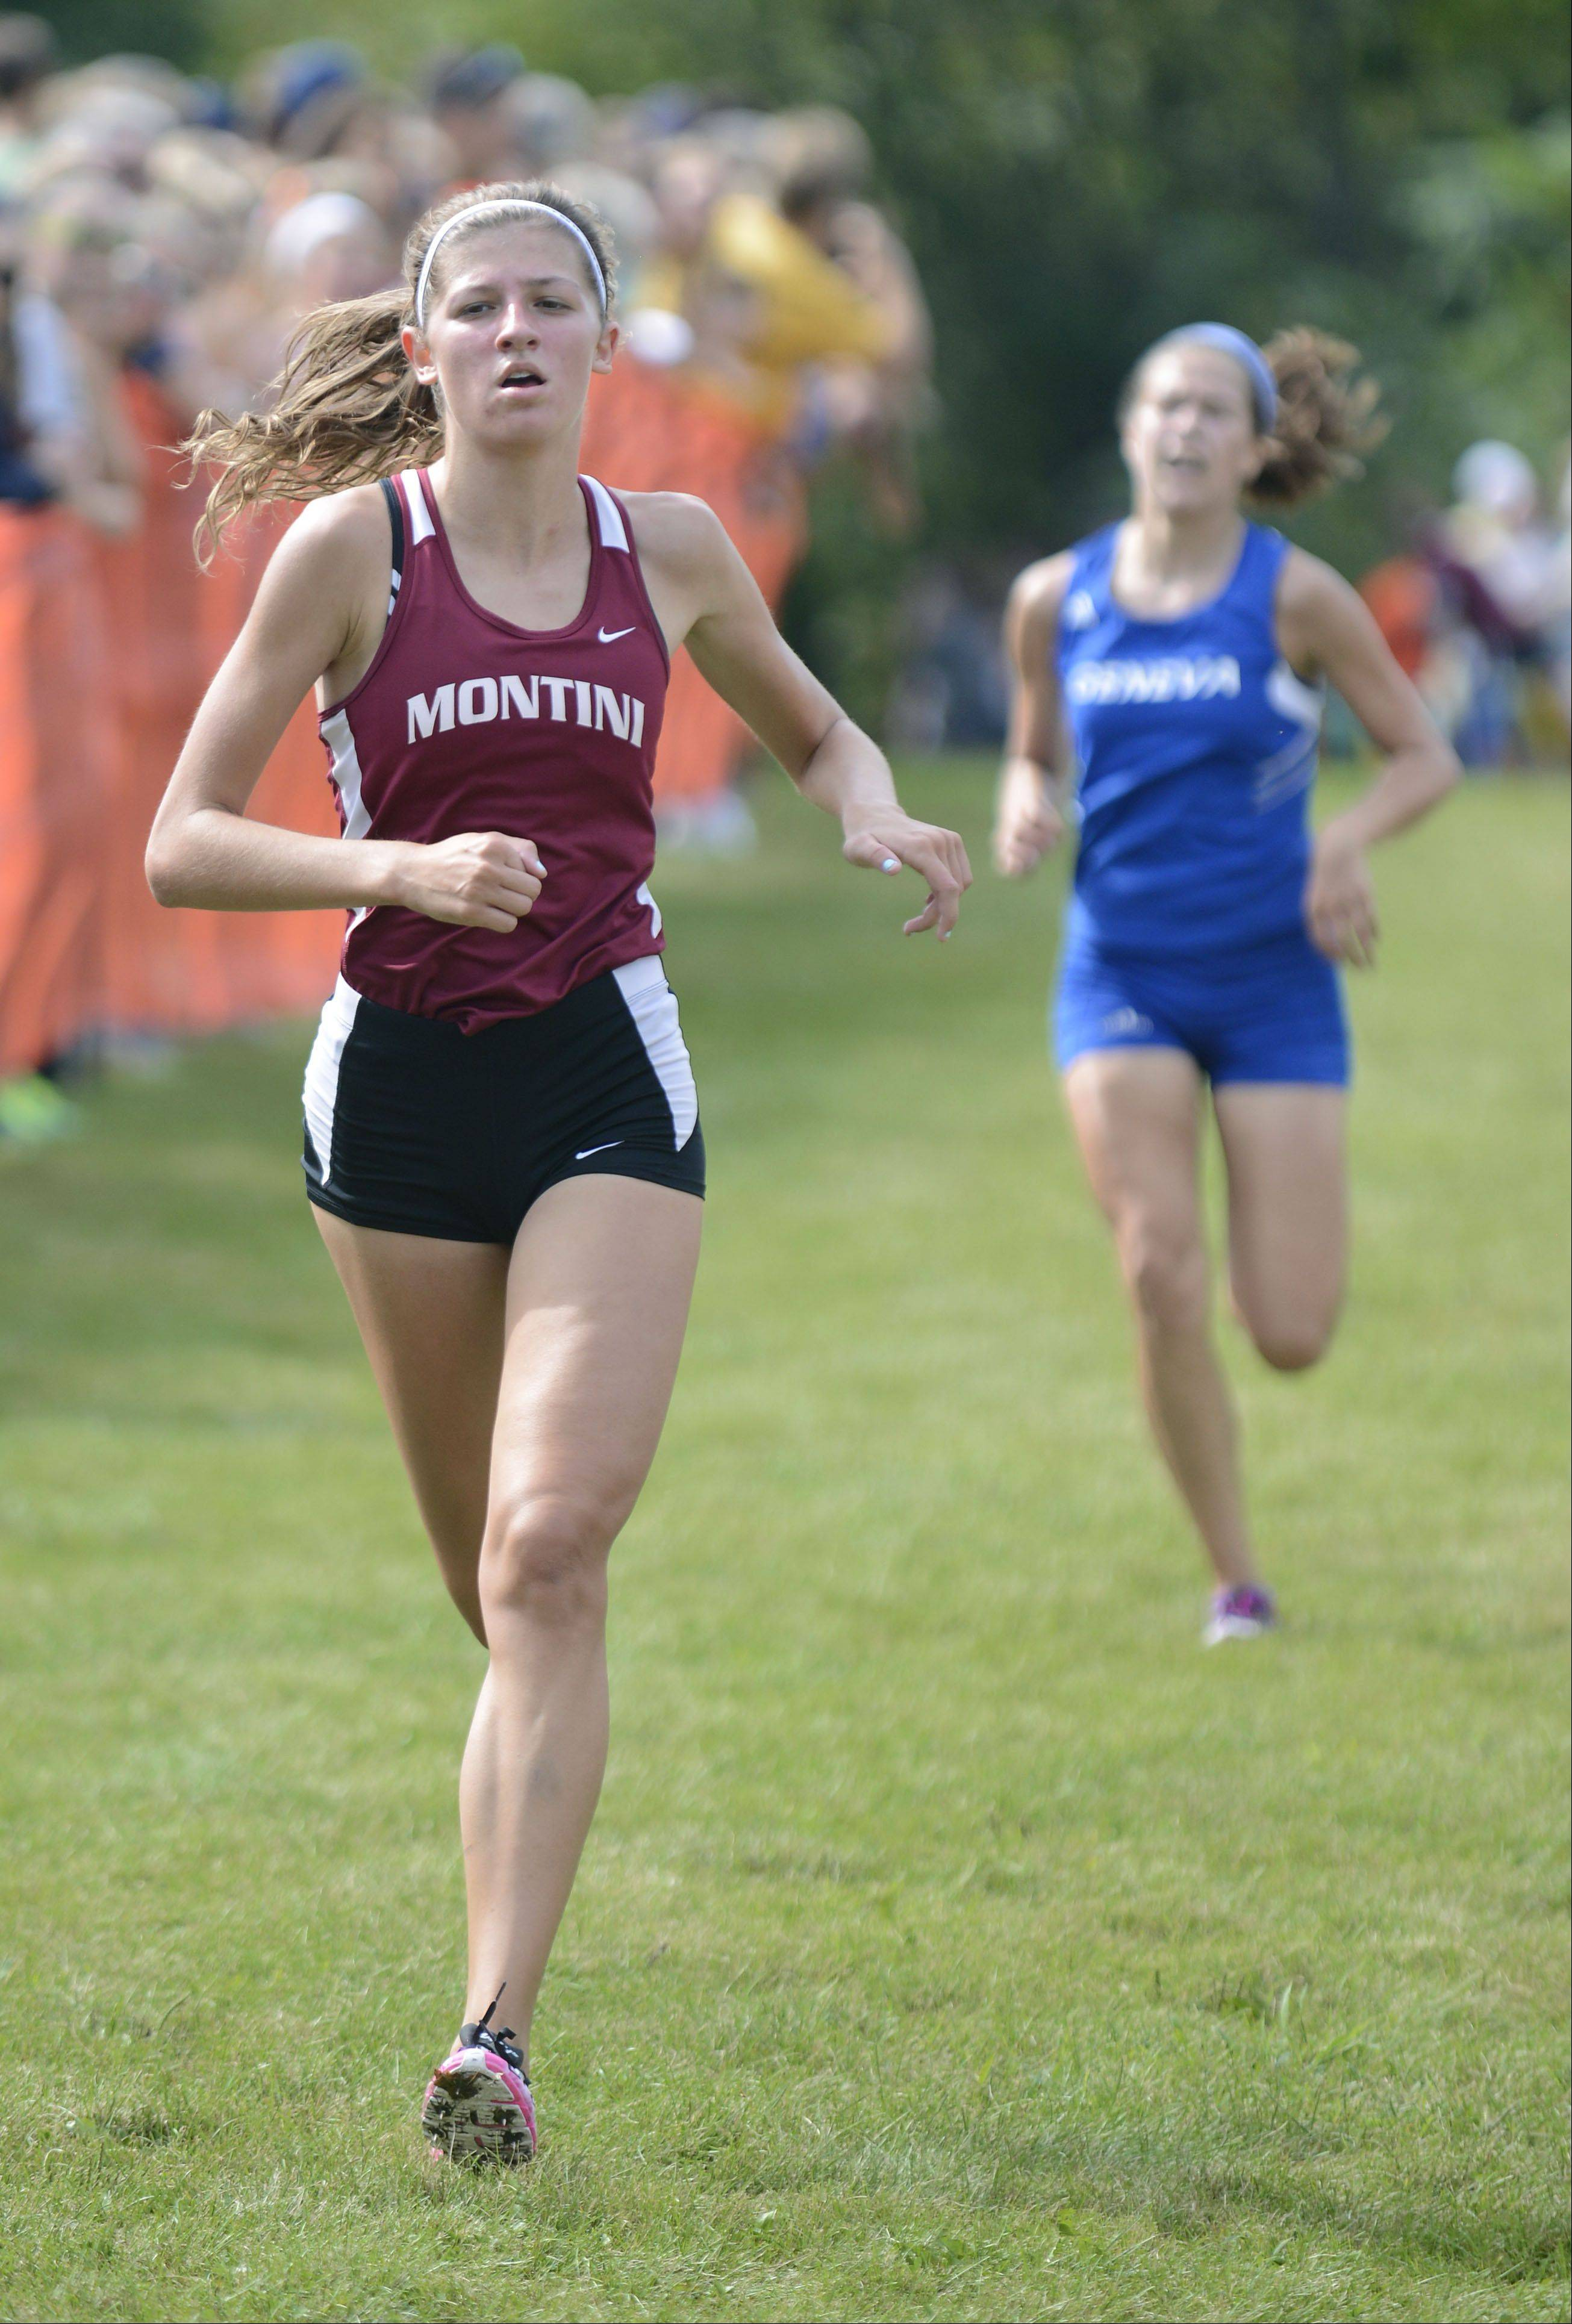 Montini's Brittany Fisher nears the finish line in the meet at Leroy Oakes Forest Preserve in St. Charles on Saturday, September 7.